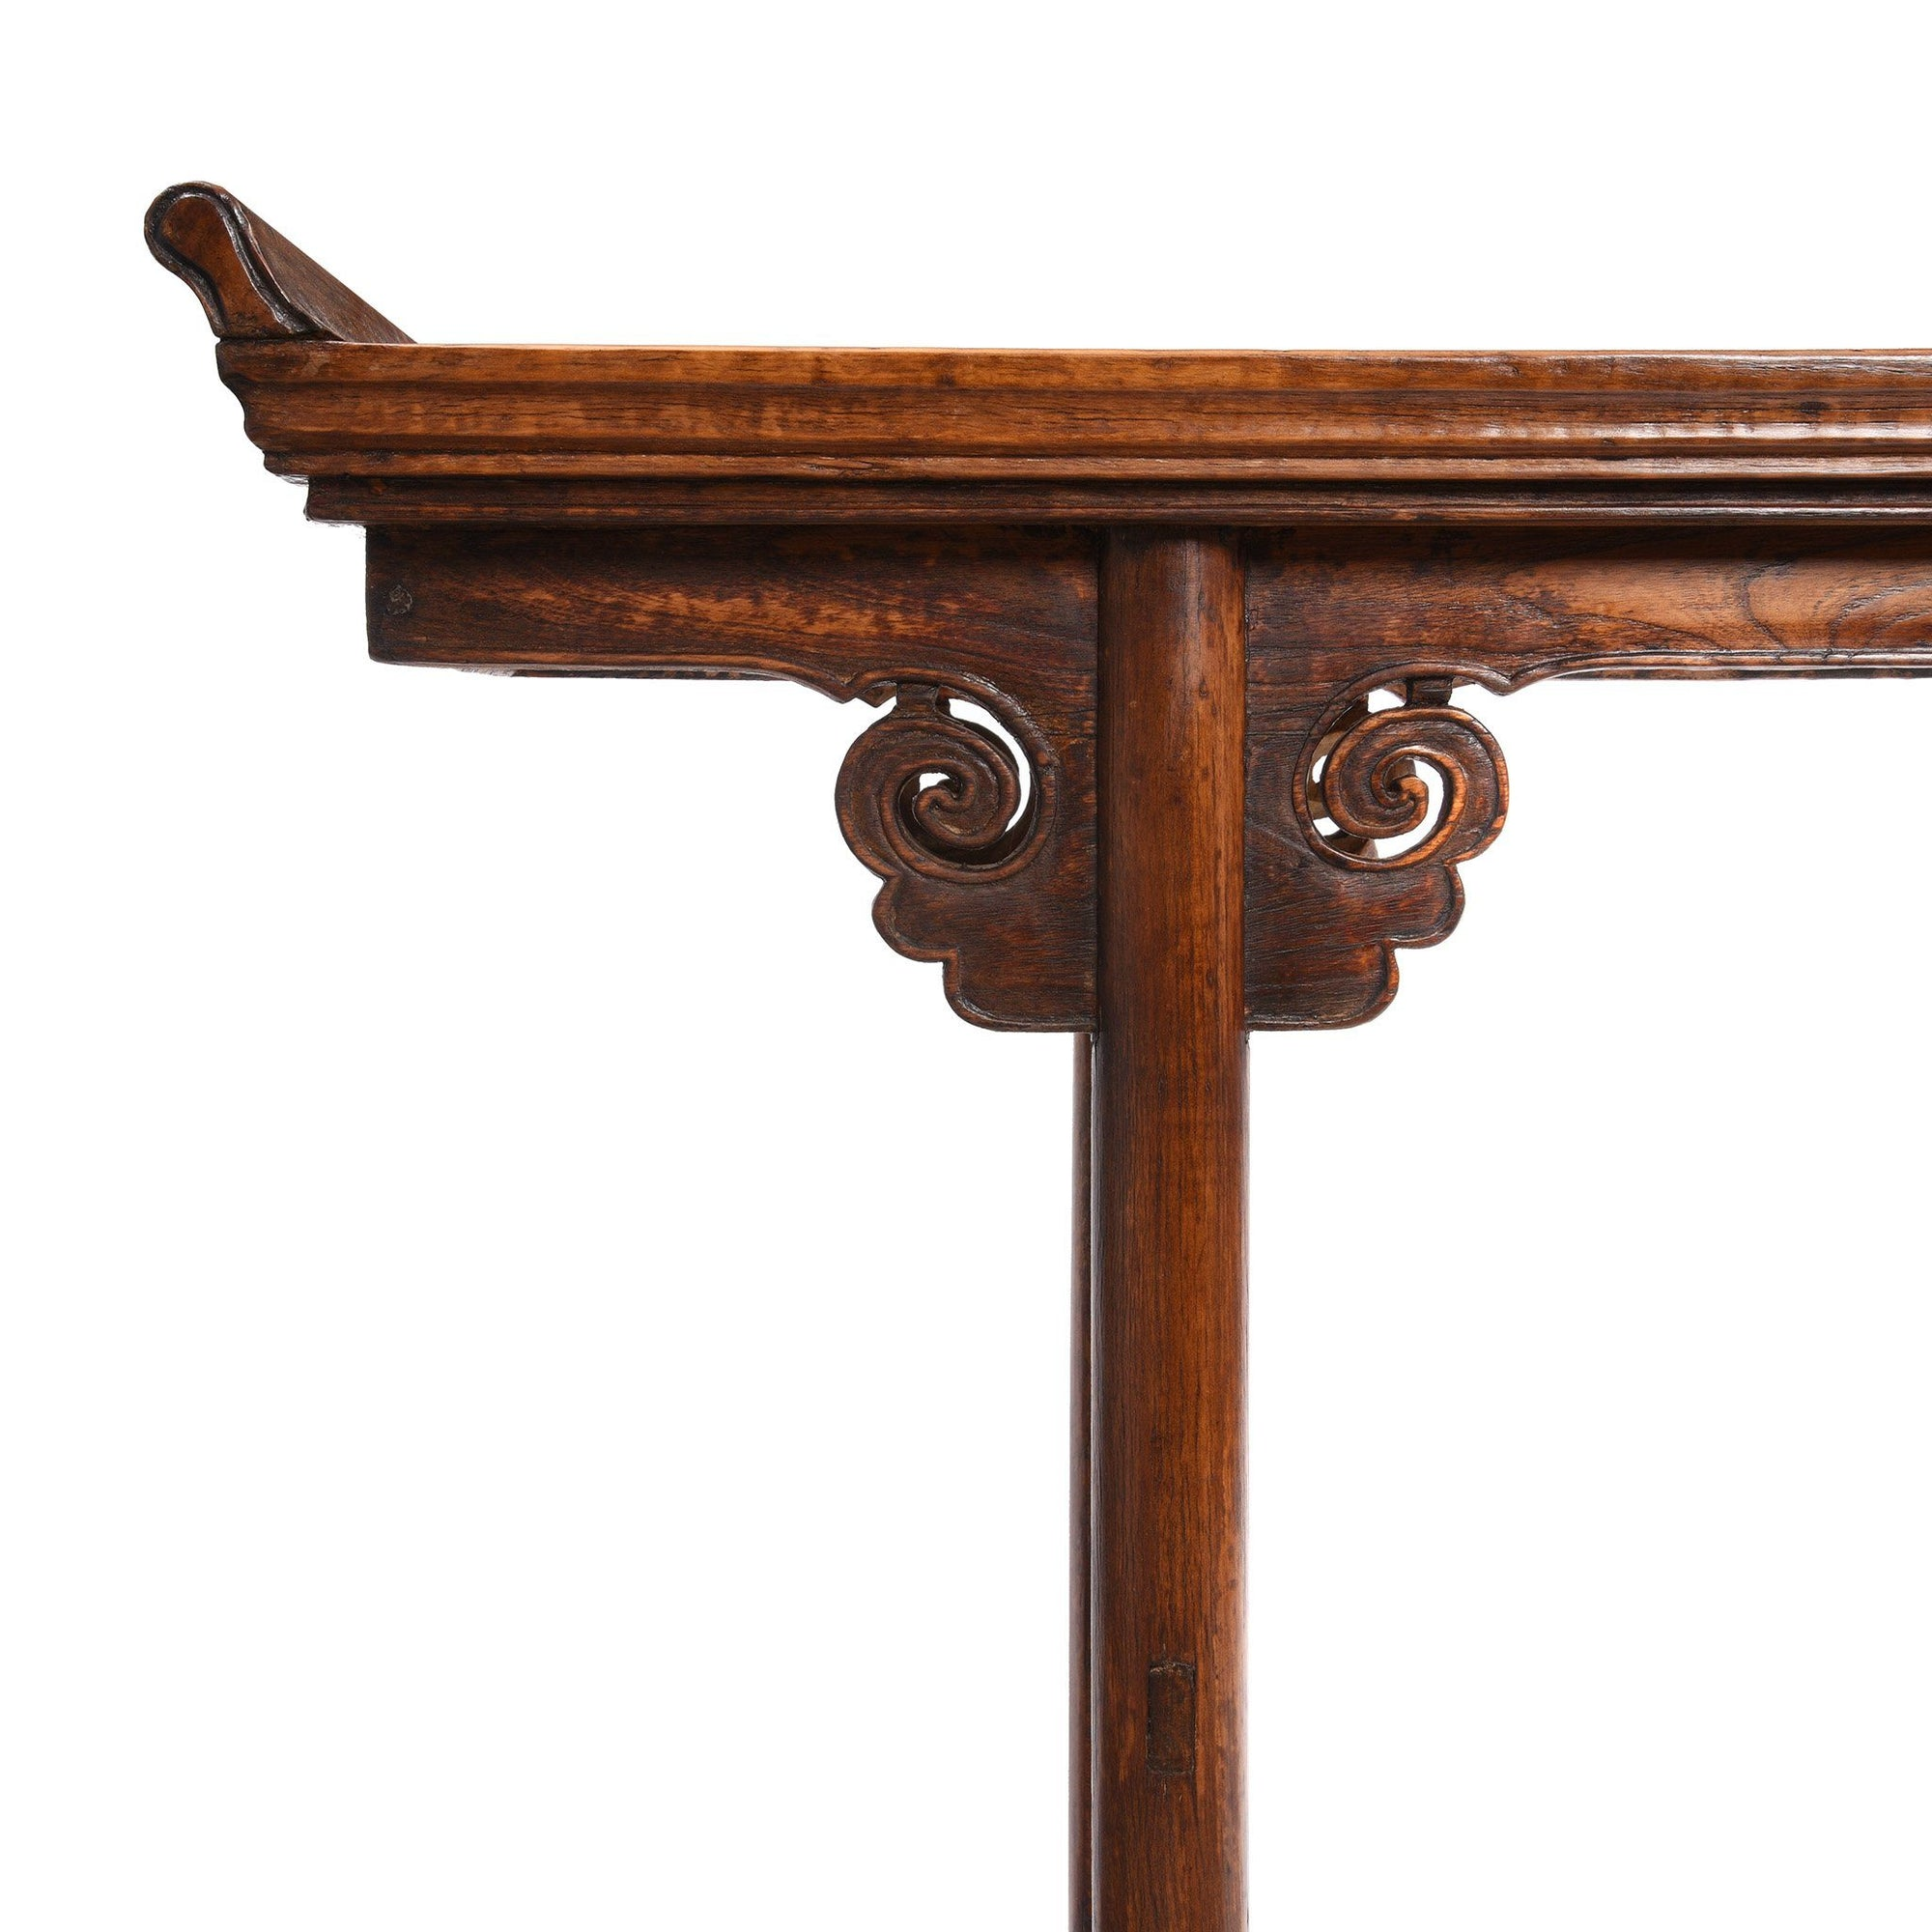 Antique Chinese Altar Table With Oak Top & Elm Legs From Gansu - 19thC | Indigo Antiques